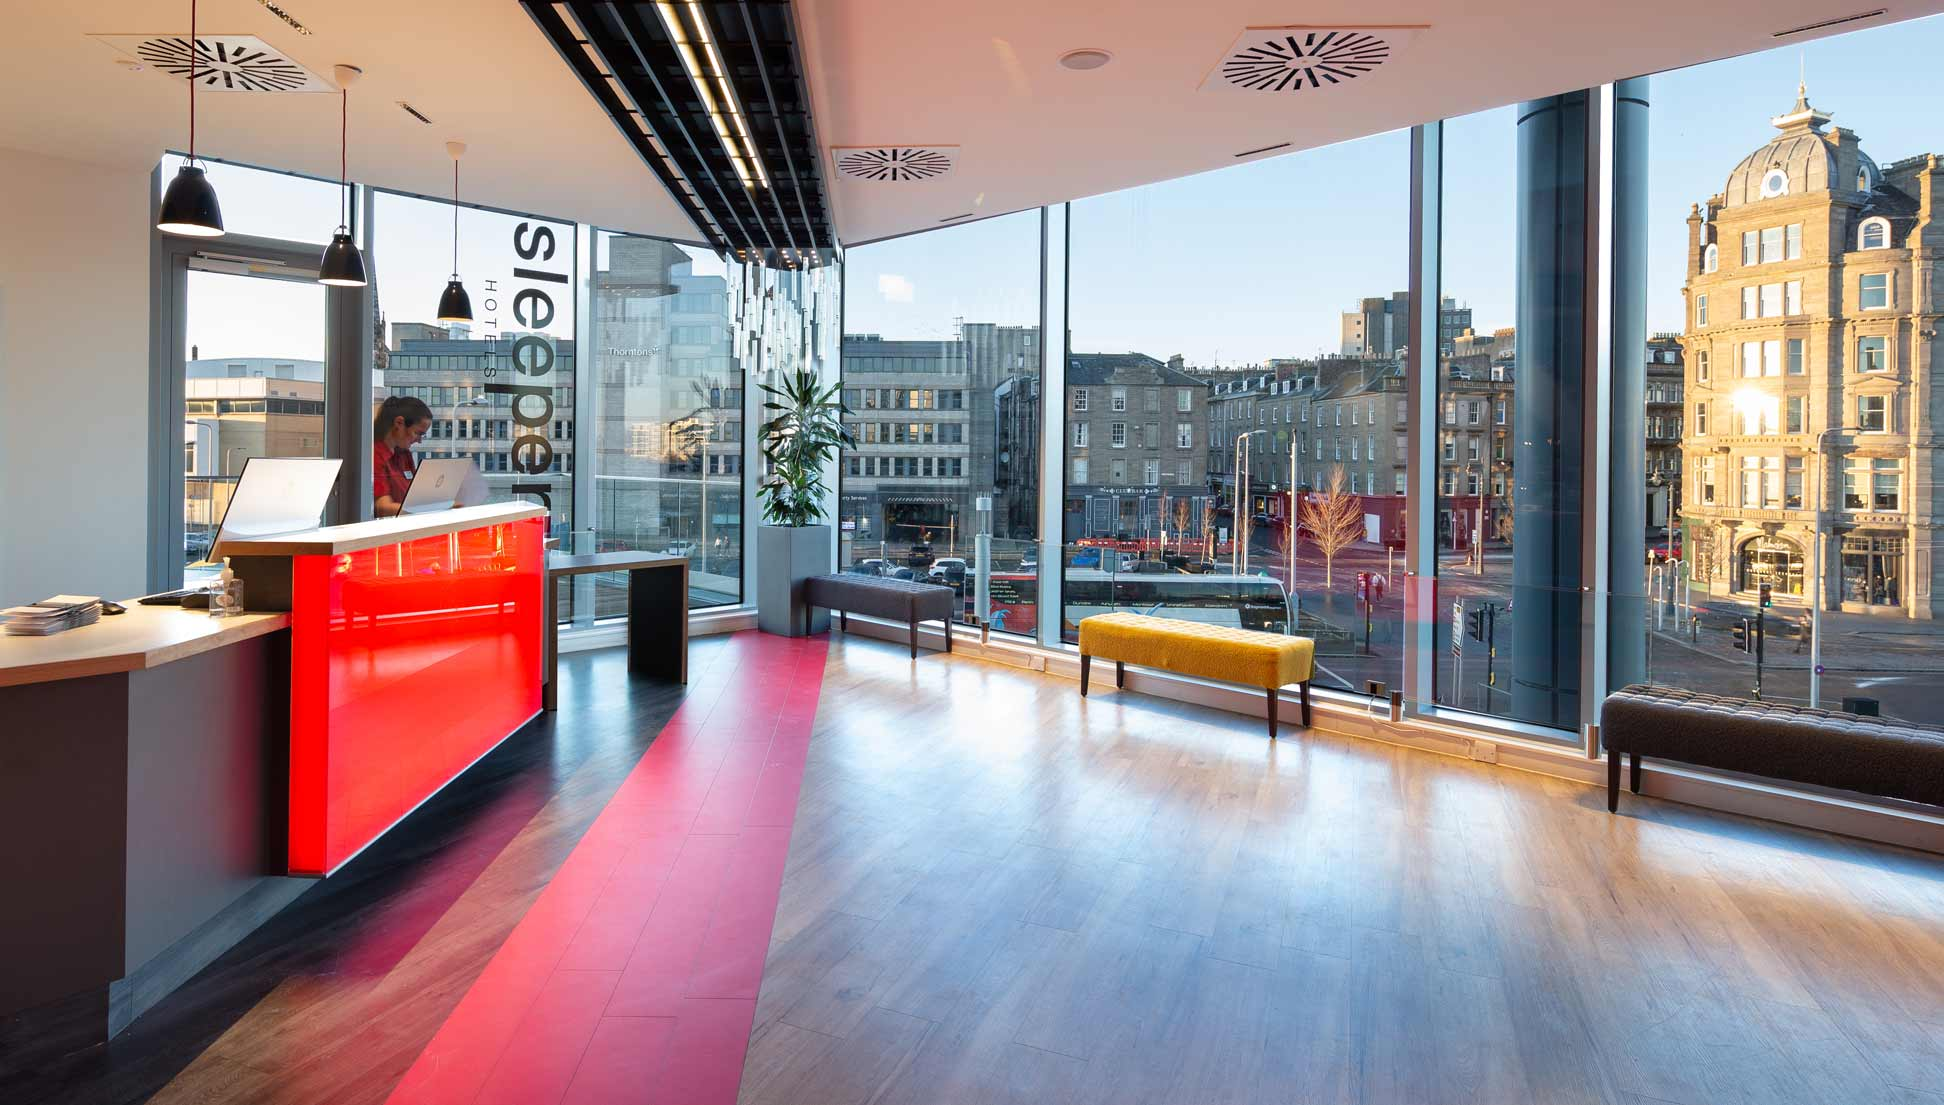 Sleeperz-Hotel-Dundee-reception-area-showing-view-of-city